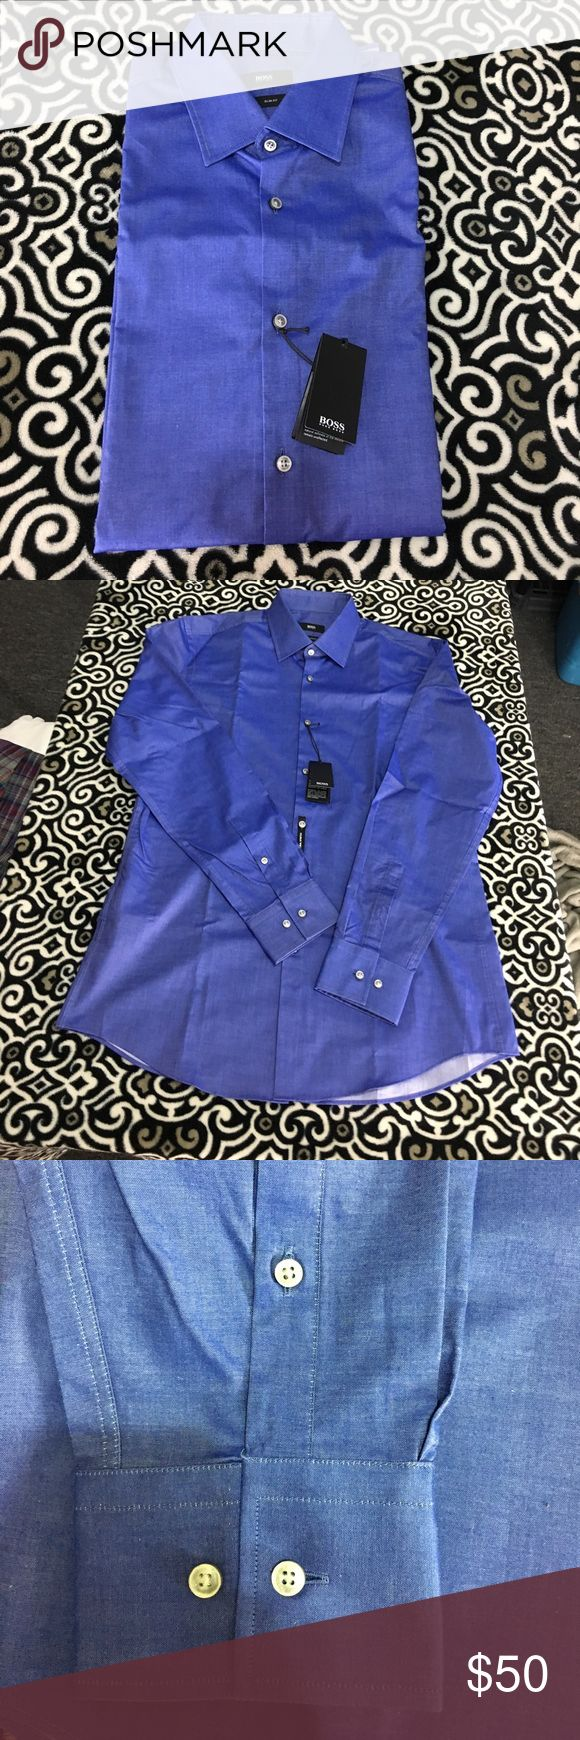 Hugo Boss Royal Blue Jacob New With Tags Slim Fit Pit to Pit: 21.5 Inches   Length: 33.25 inches   Waist: 20.25 Inches  Hugo Boss New With Tags Slim Fit Hugo Boss Shirts Dress Shirts